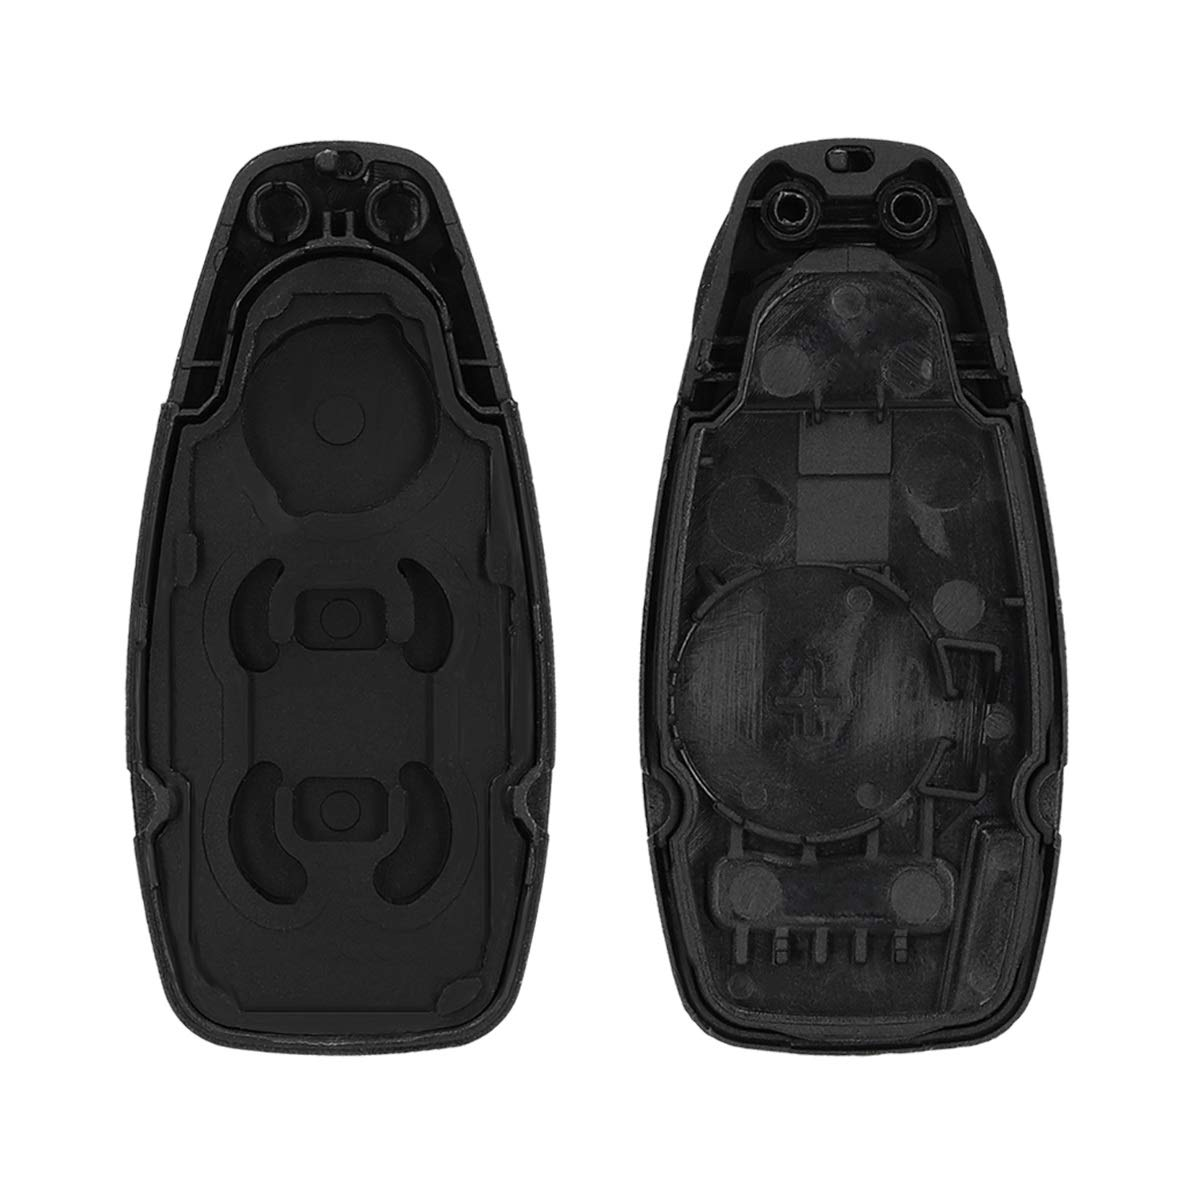 kwmobile Car Key Case for Ford Black Protective Plastic Key Fob Shell Replacement for Ford 3 Button Car Key Keyless Go